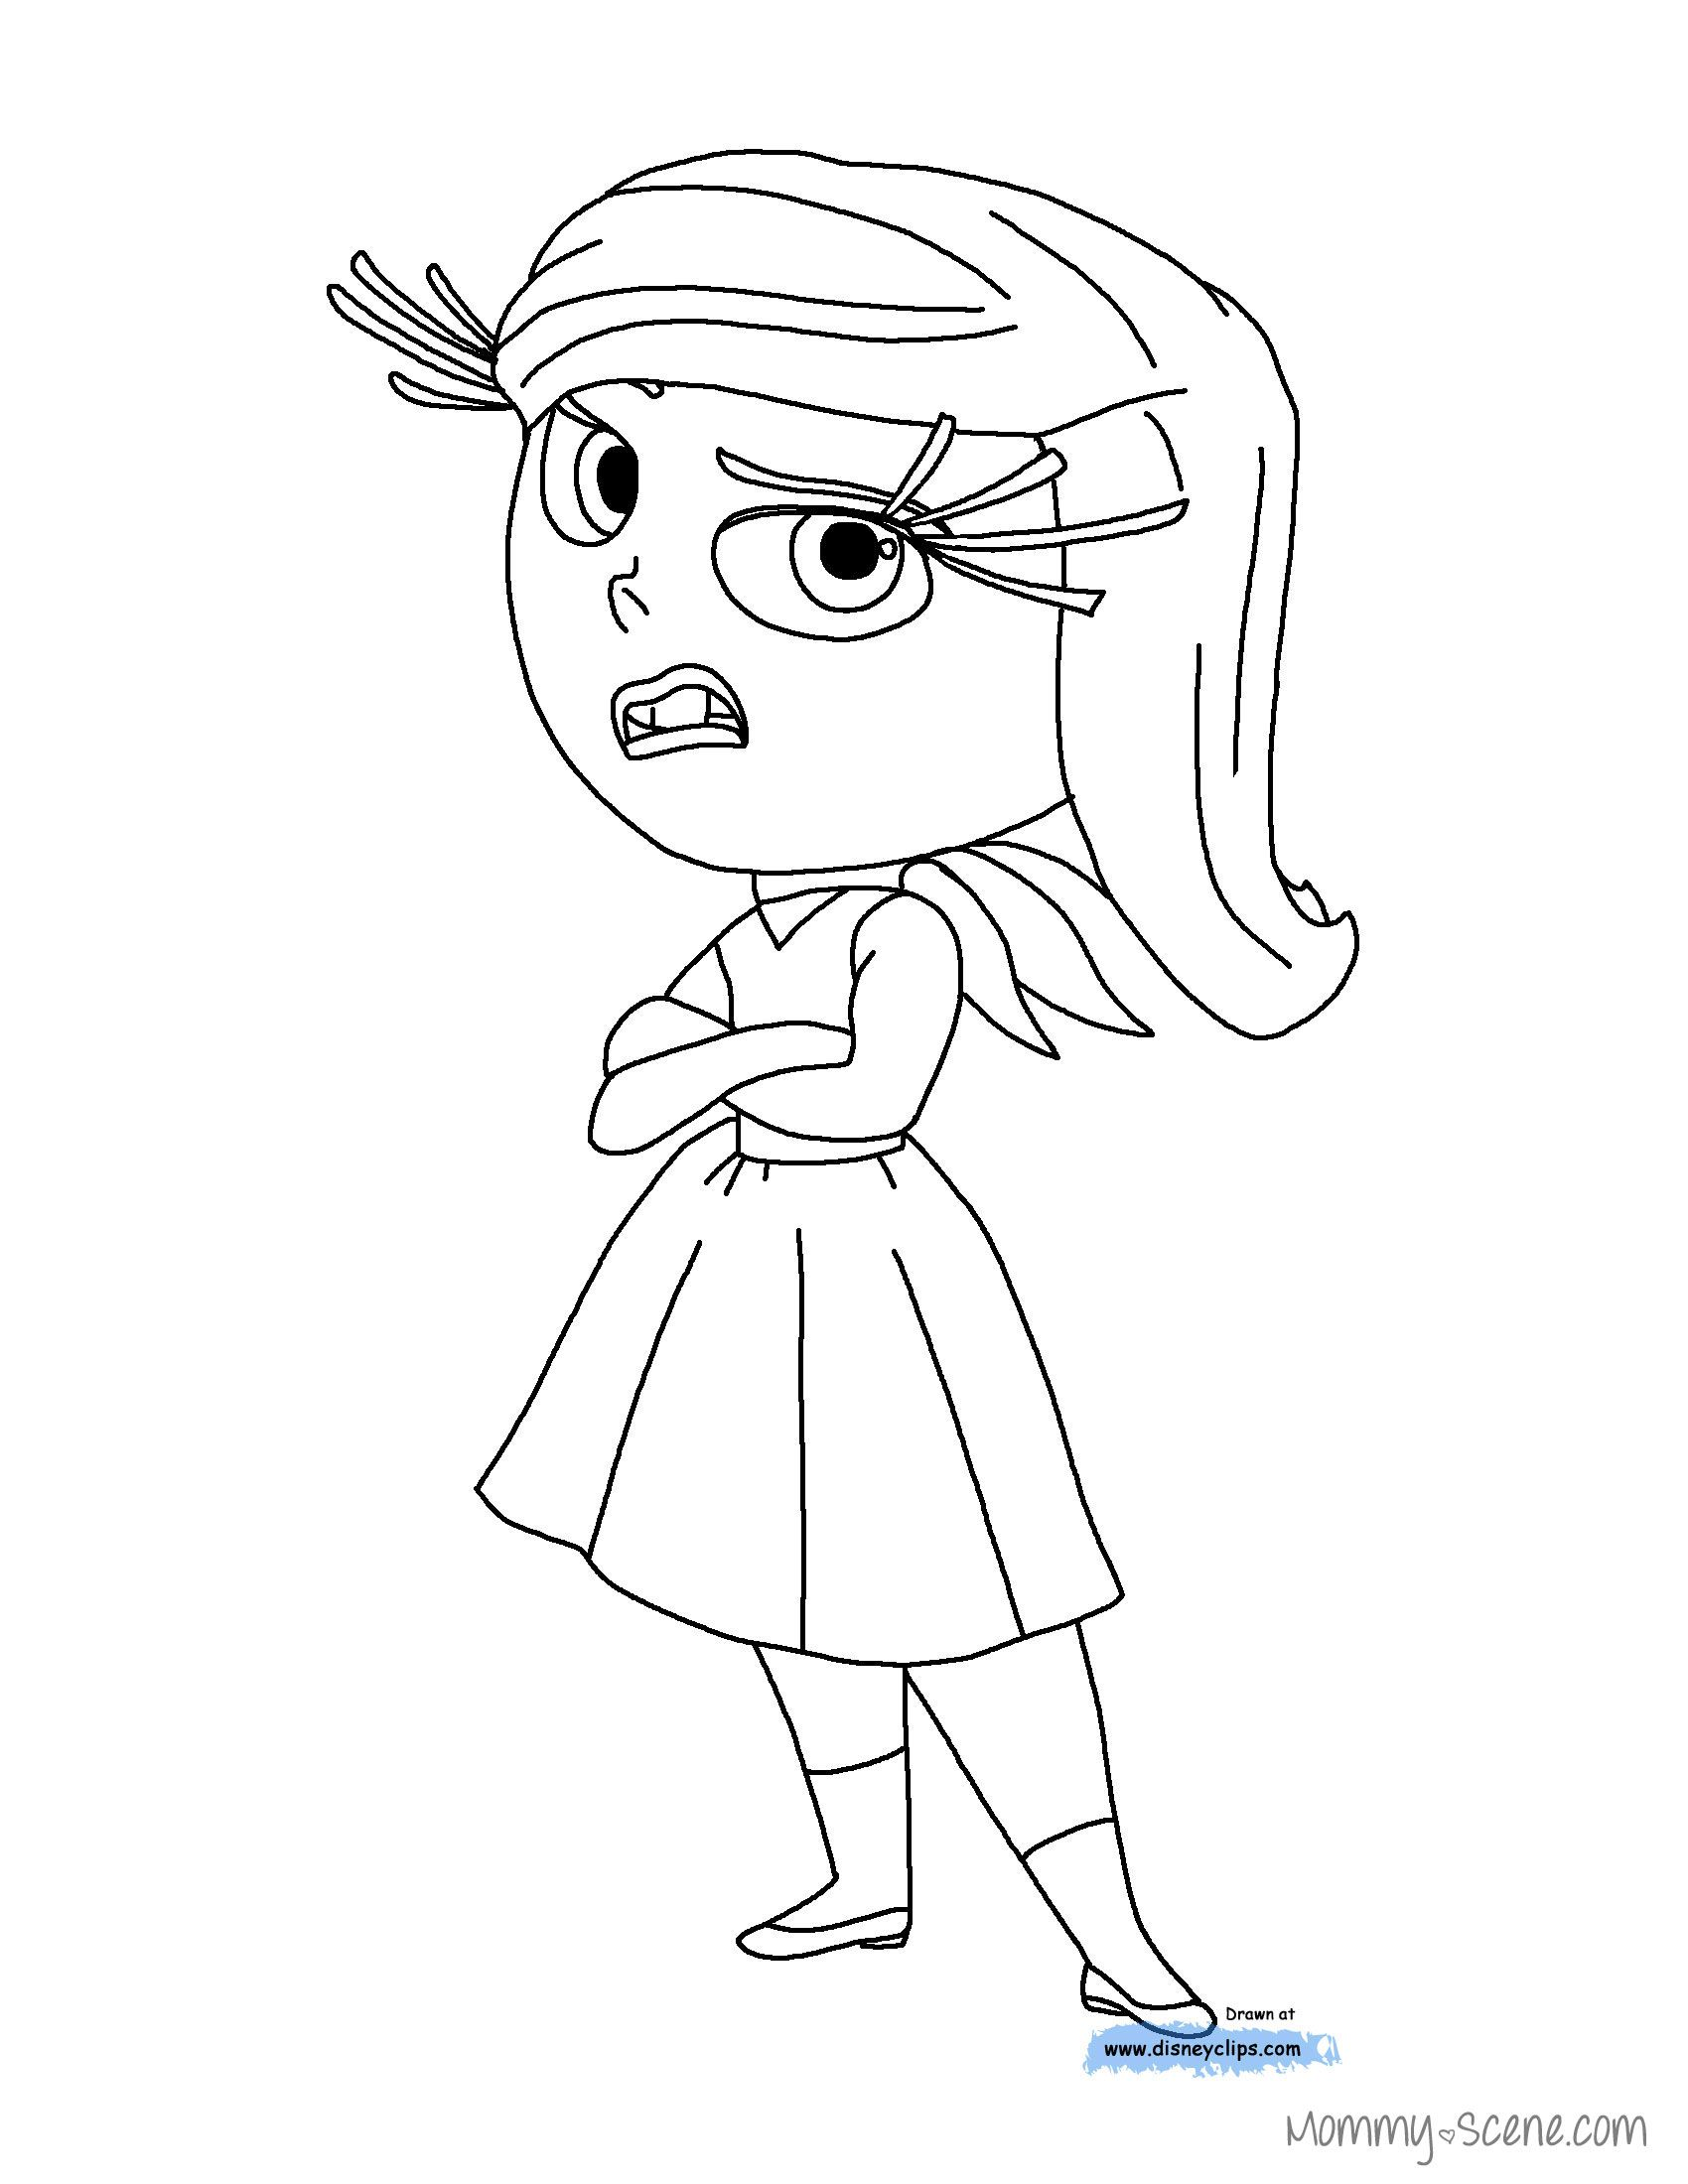 disneys inside out coloring pages mommy scene - Coloring Page Inside Out